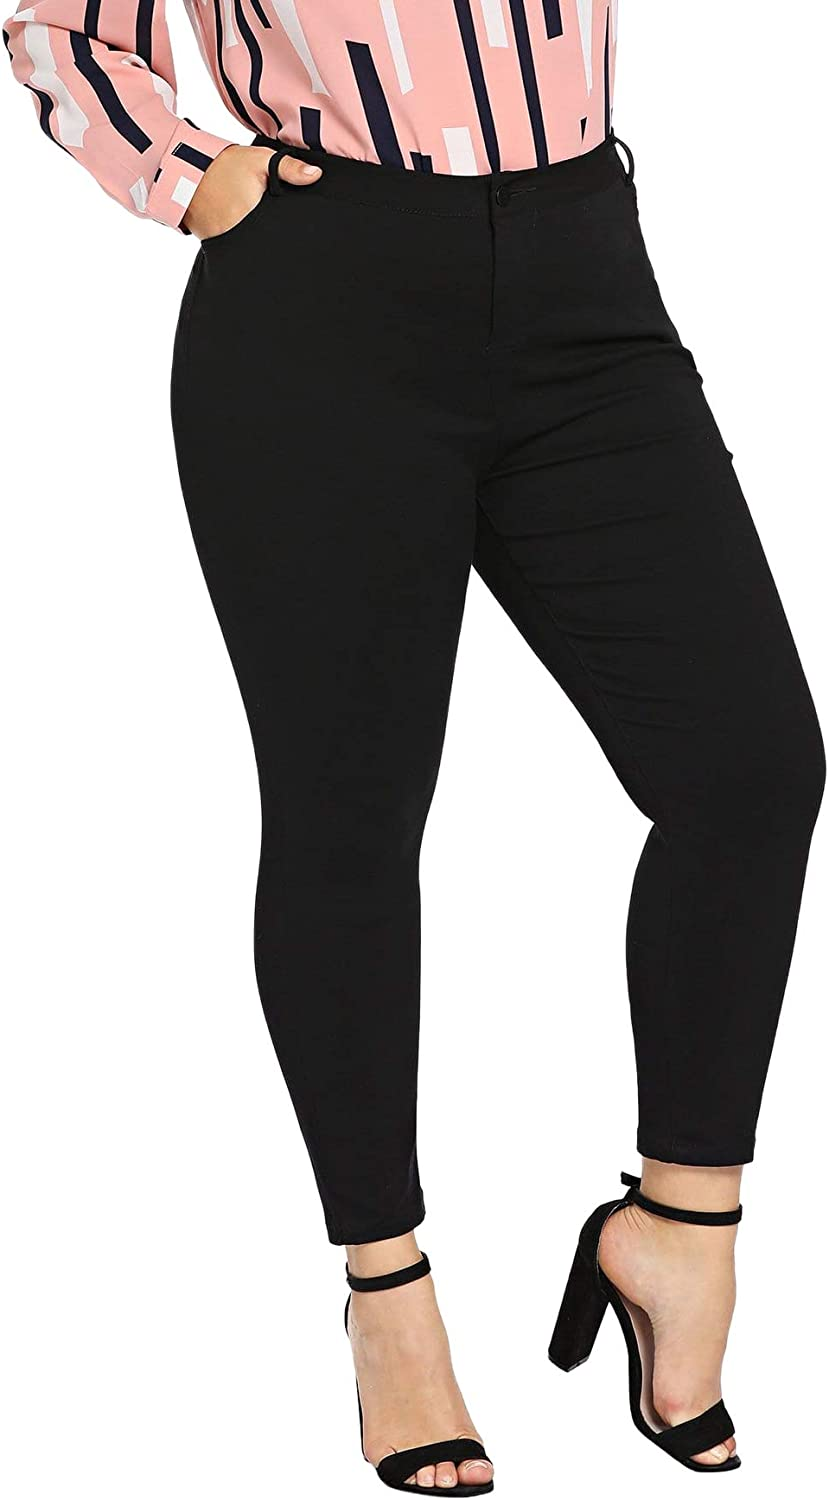 SOLY HUX Women's Plus Size High Waisted Jeans Skinny Stretch Denim Pants